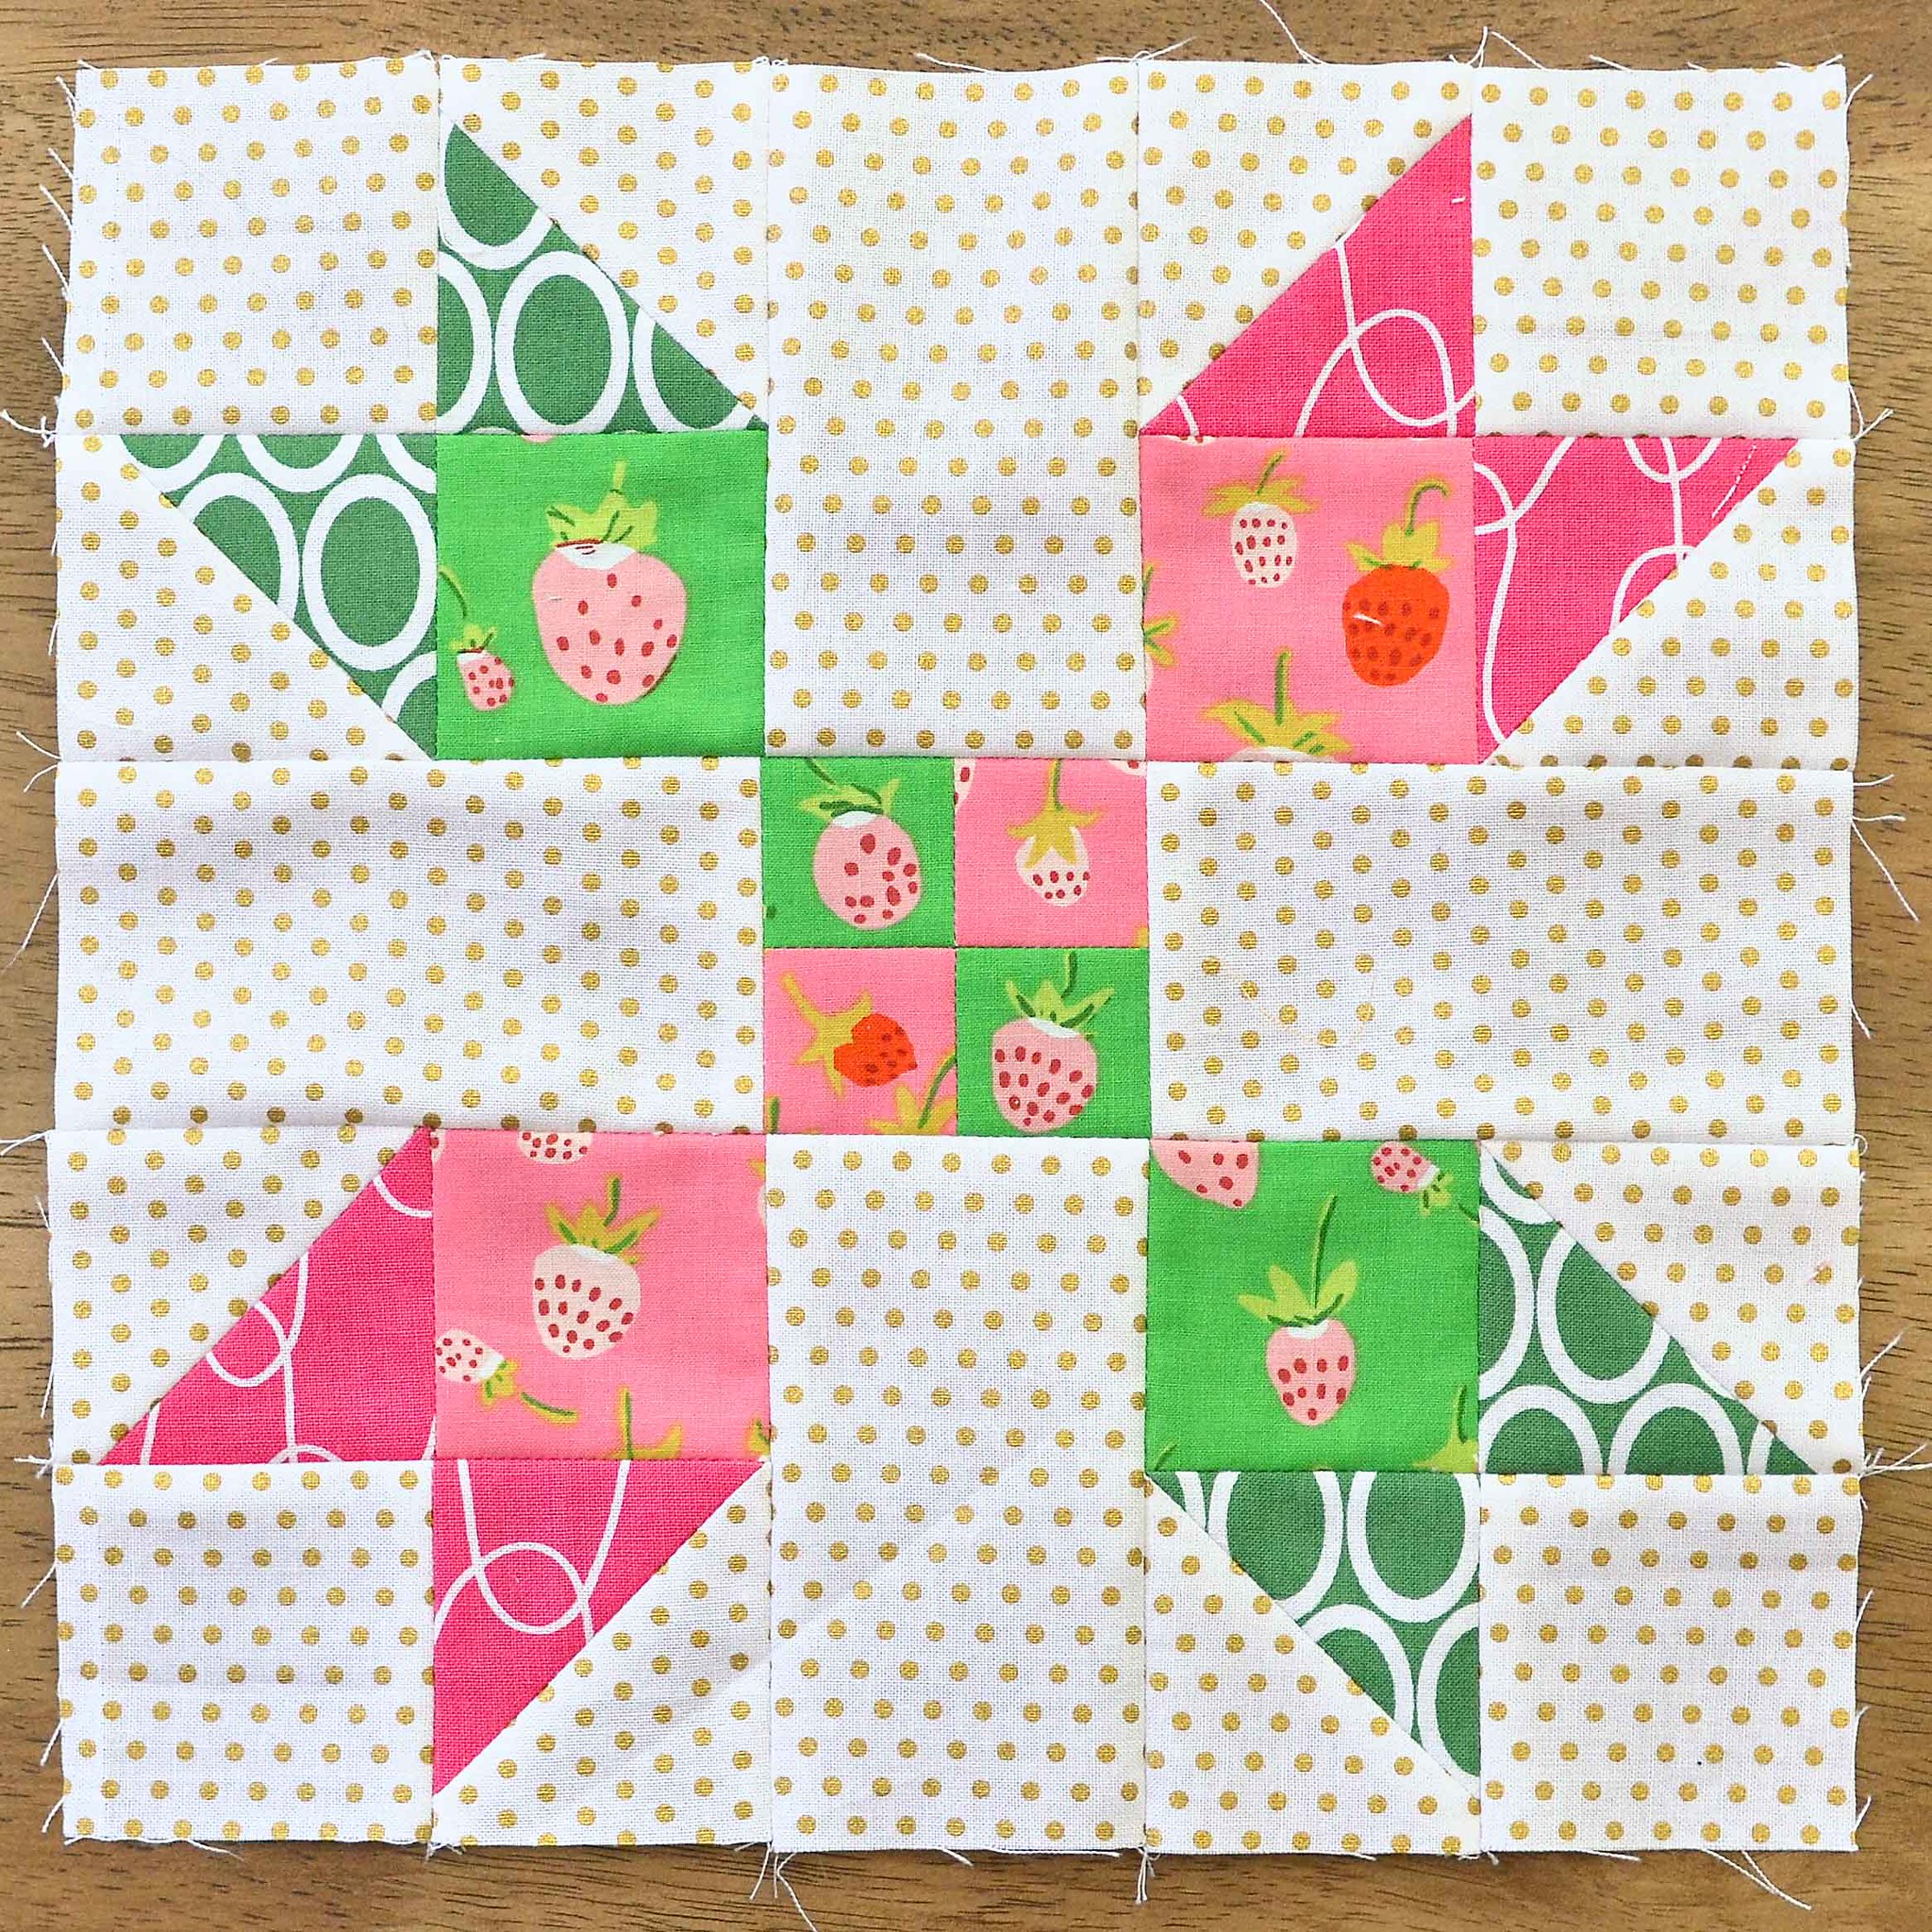 The Fussy Cut Sampler QAL Block 17